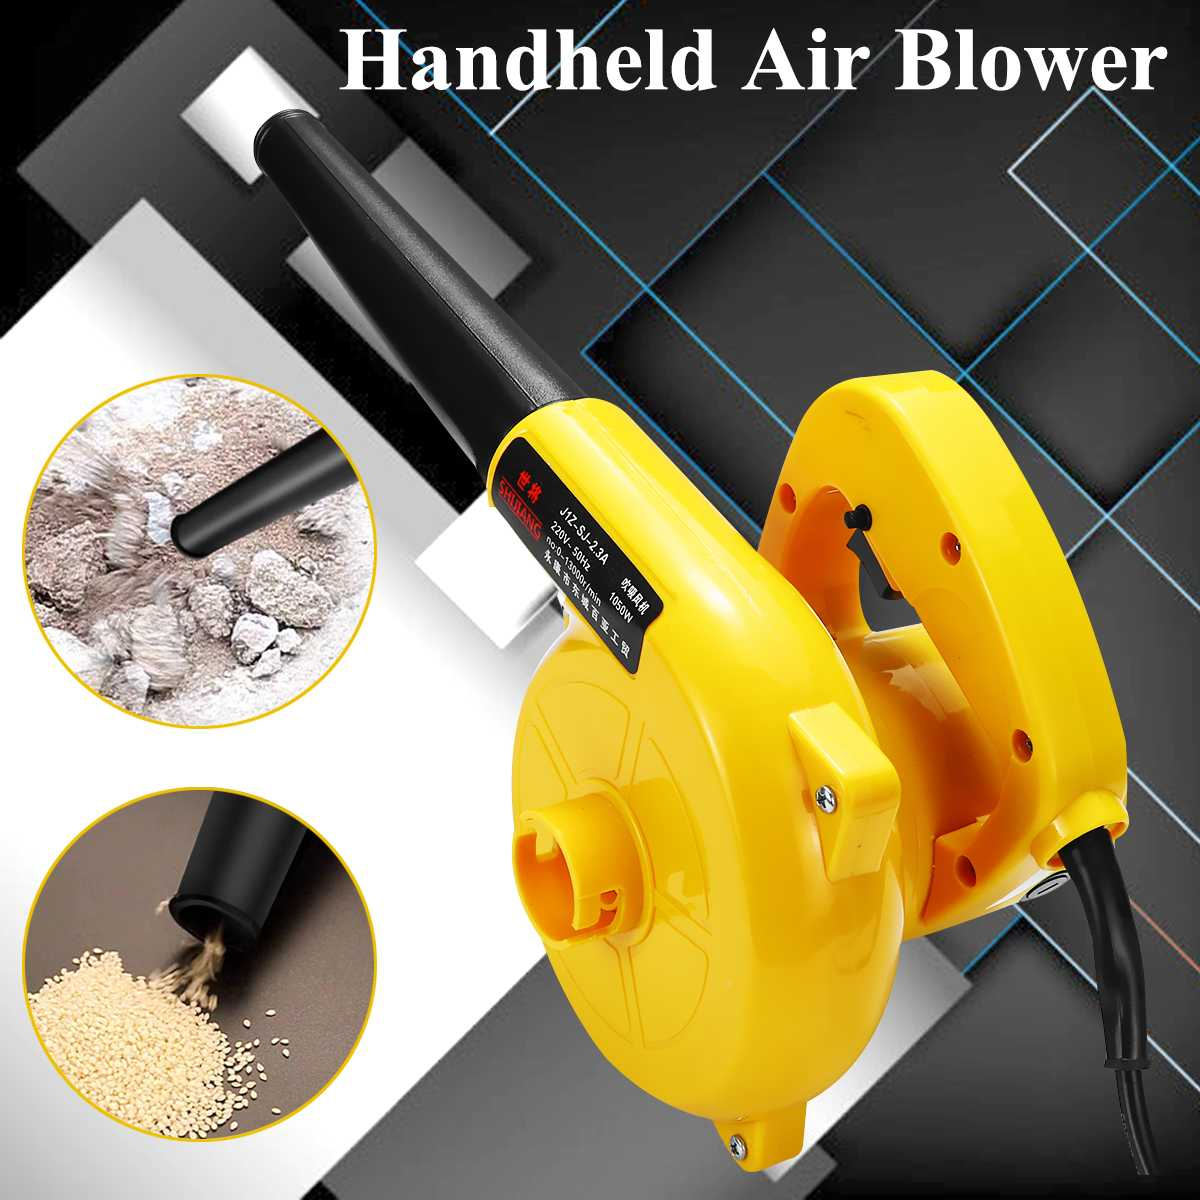 1050W Electric Handheld Air Blower Portable Computer Cleaner Electric Blower Vacuum Cleaning Leaf Collector Car Blow Suck Dust